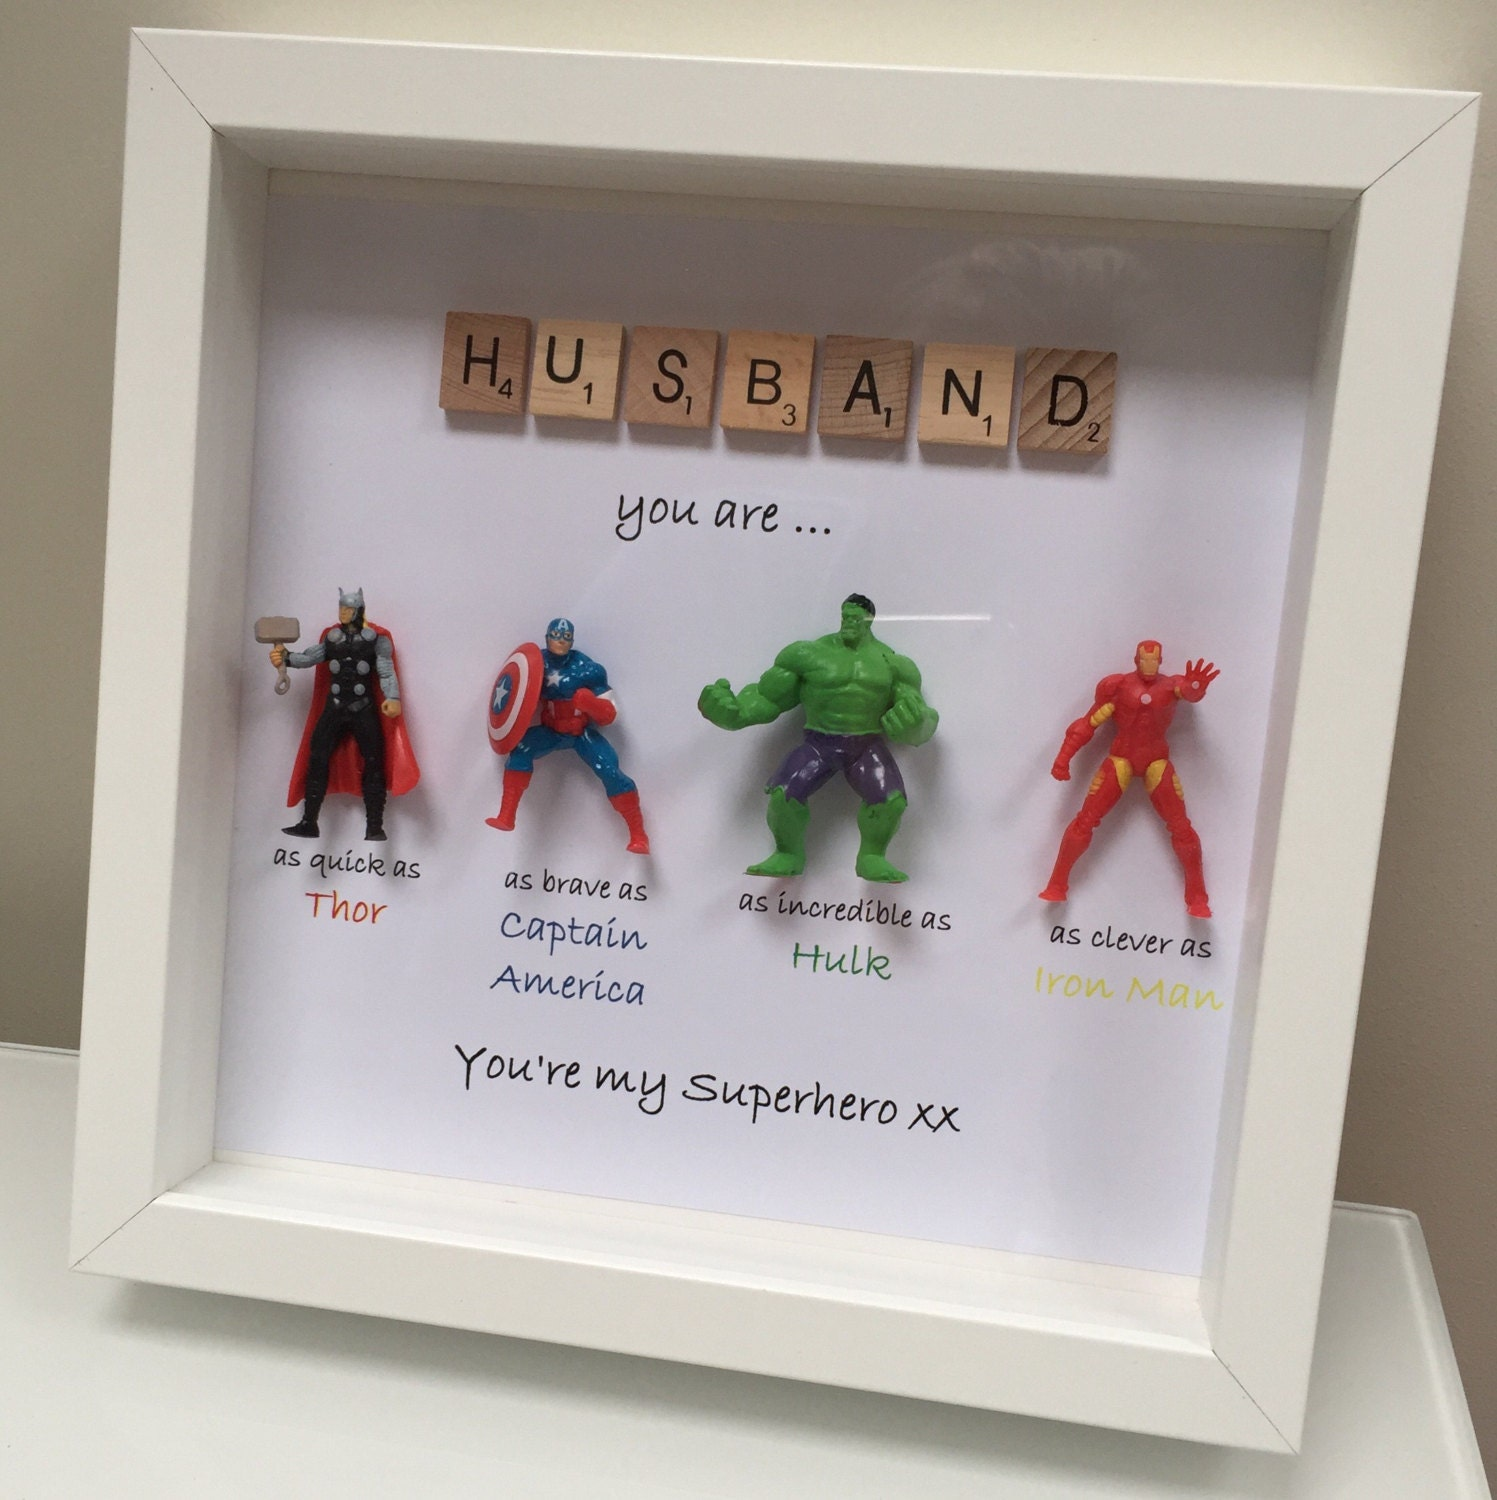 avengers superhero figures frame gift ideal for dad brother. Black Bedroom Furniture Sets. Home Design Ideas